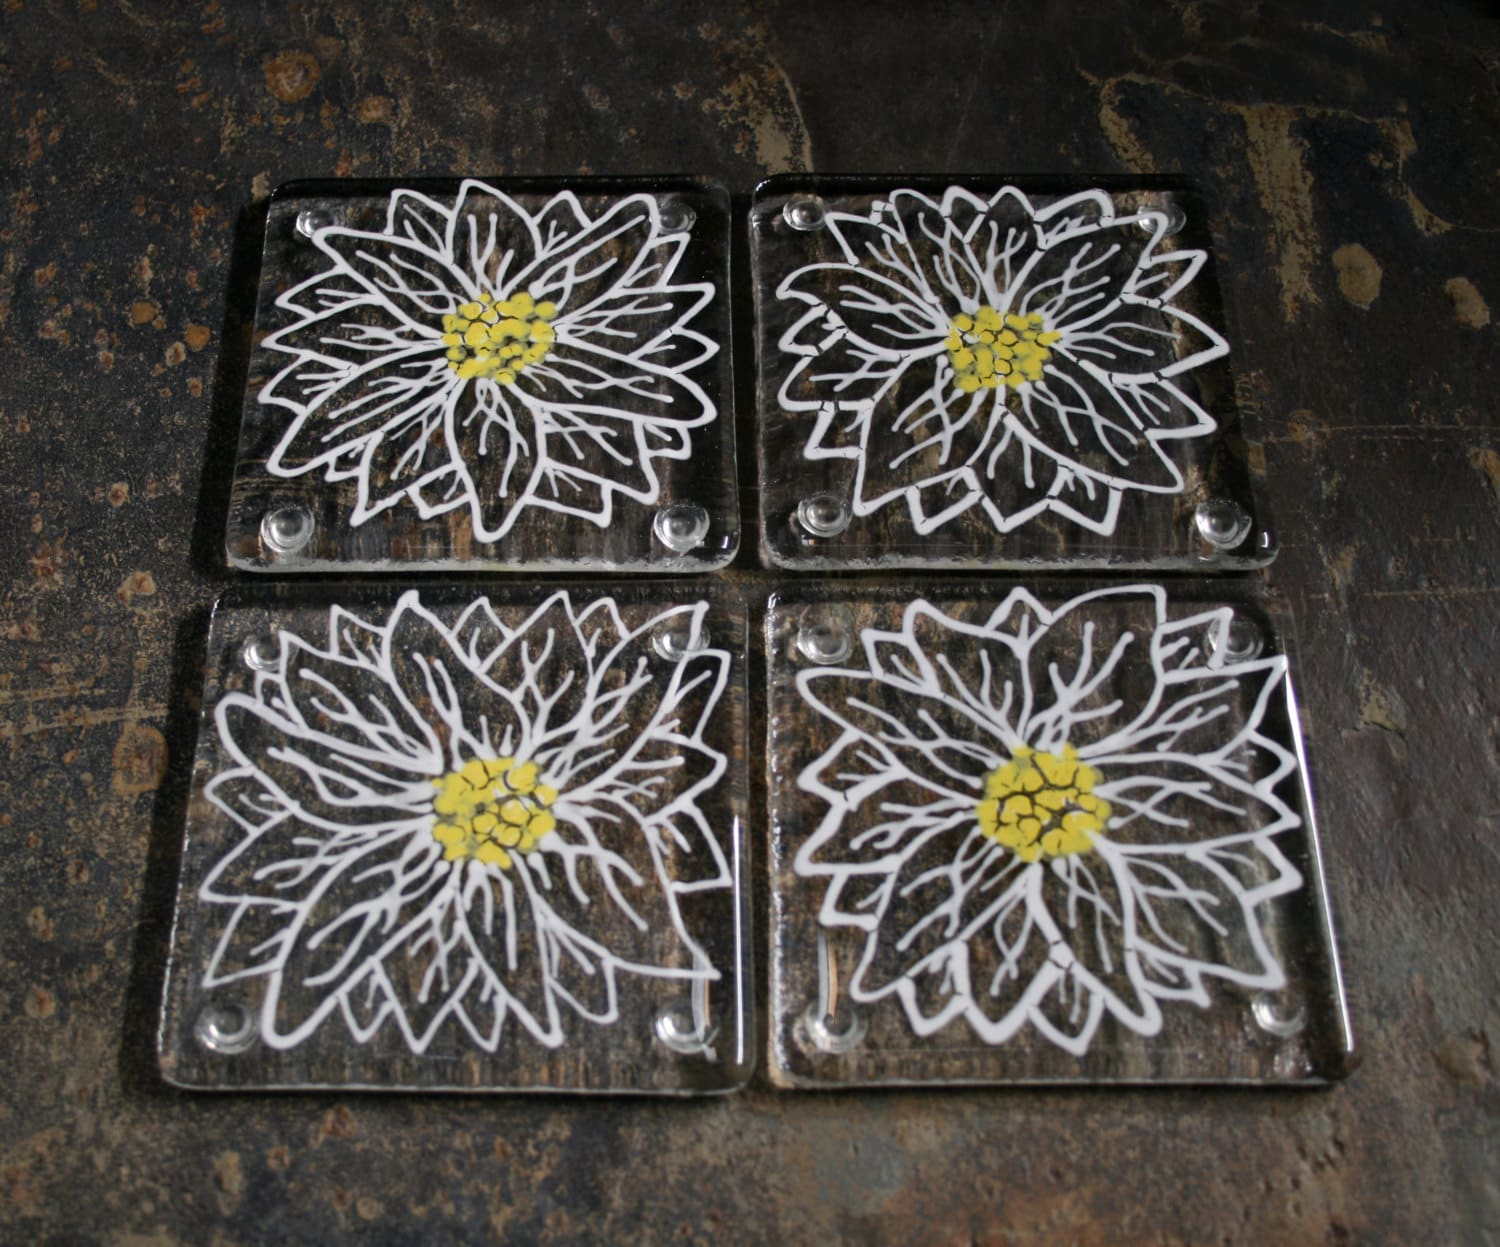 kiln fused glass coasters 39 daisy 39 large white etsy. Black Bedroom Furniture Sets. Home Design Ideas